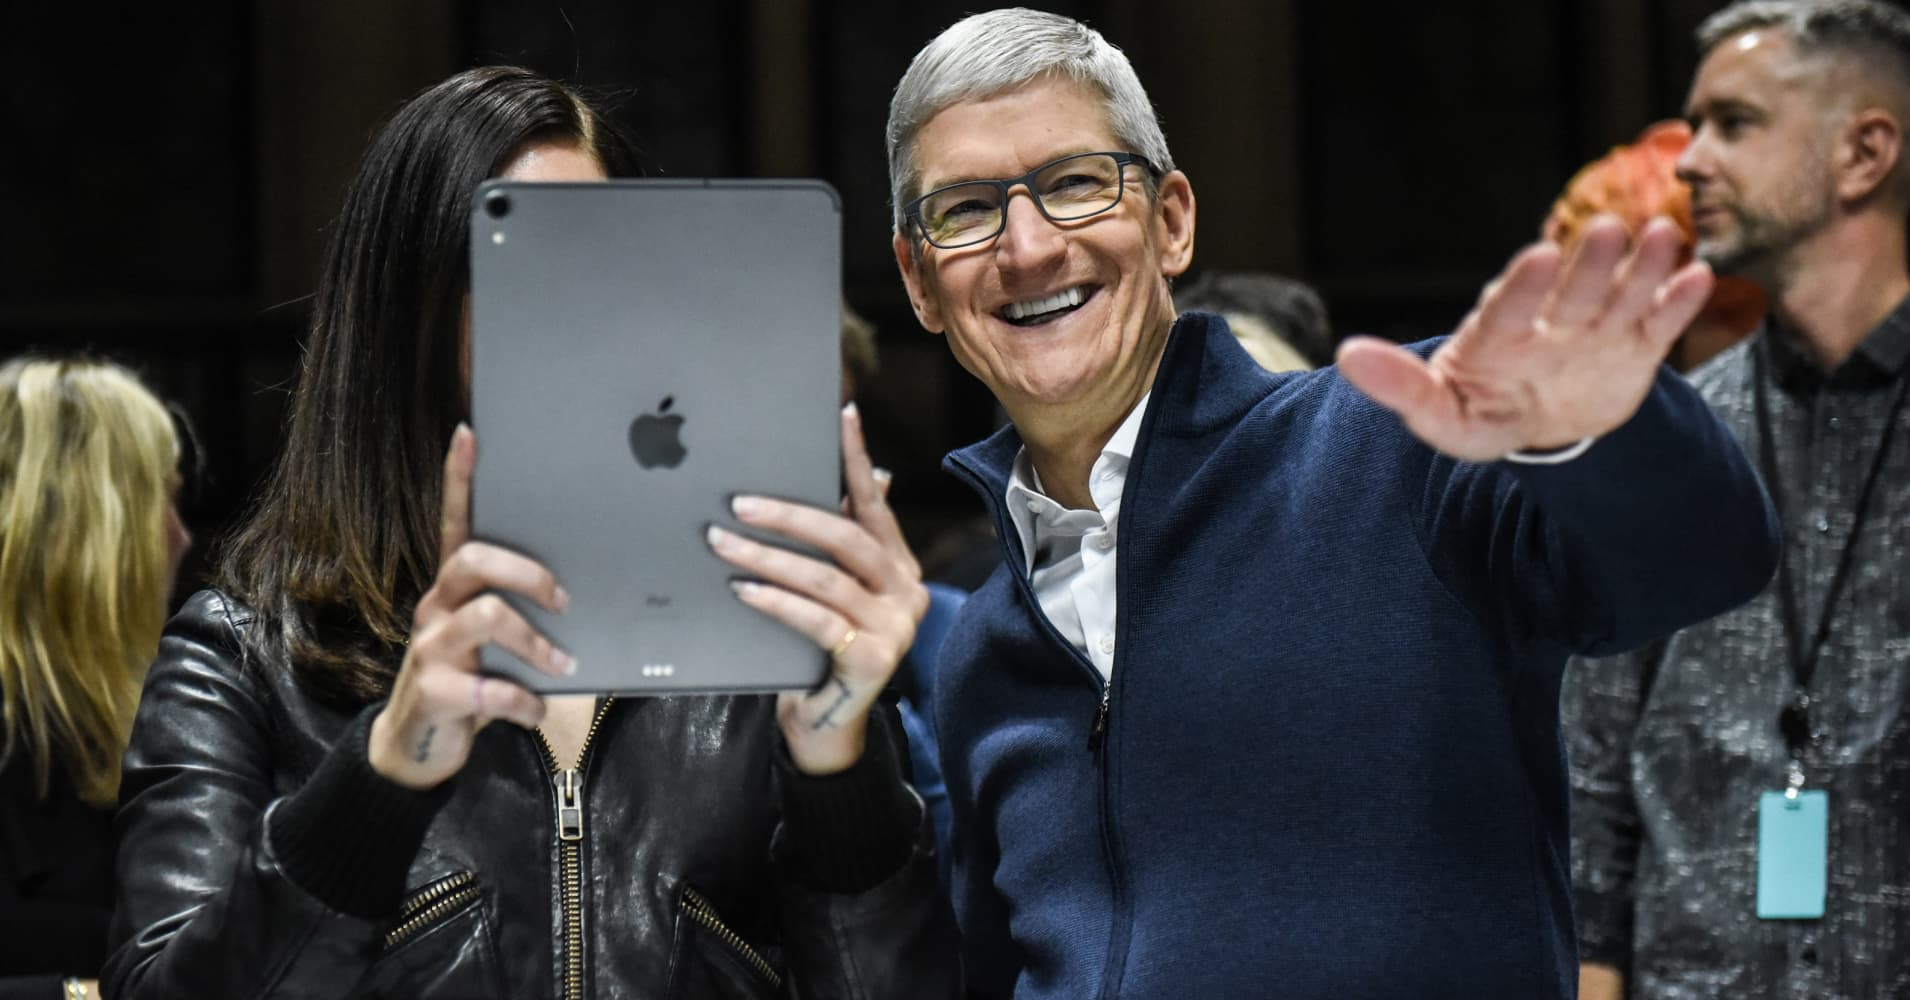 Apple is adding 1,200 employees in Qualcomm's backyard as their legal dispute wages on